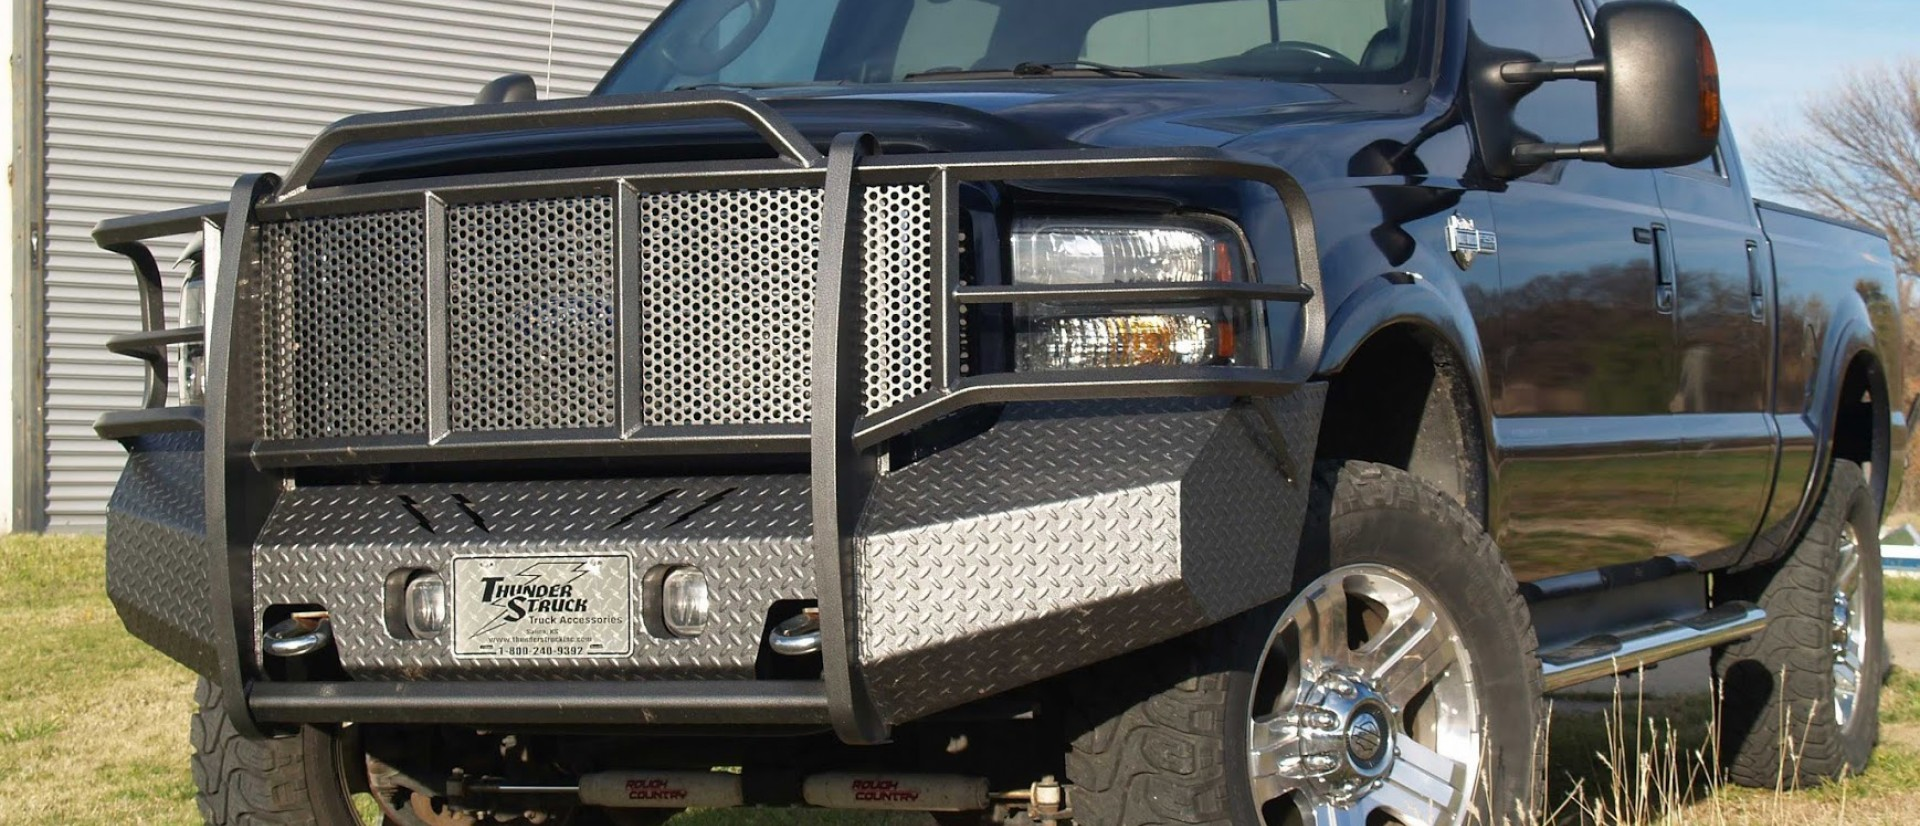 Truck with Thunderstruck Bumper